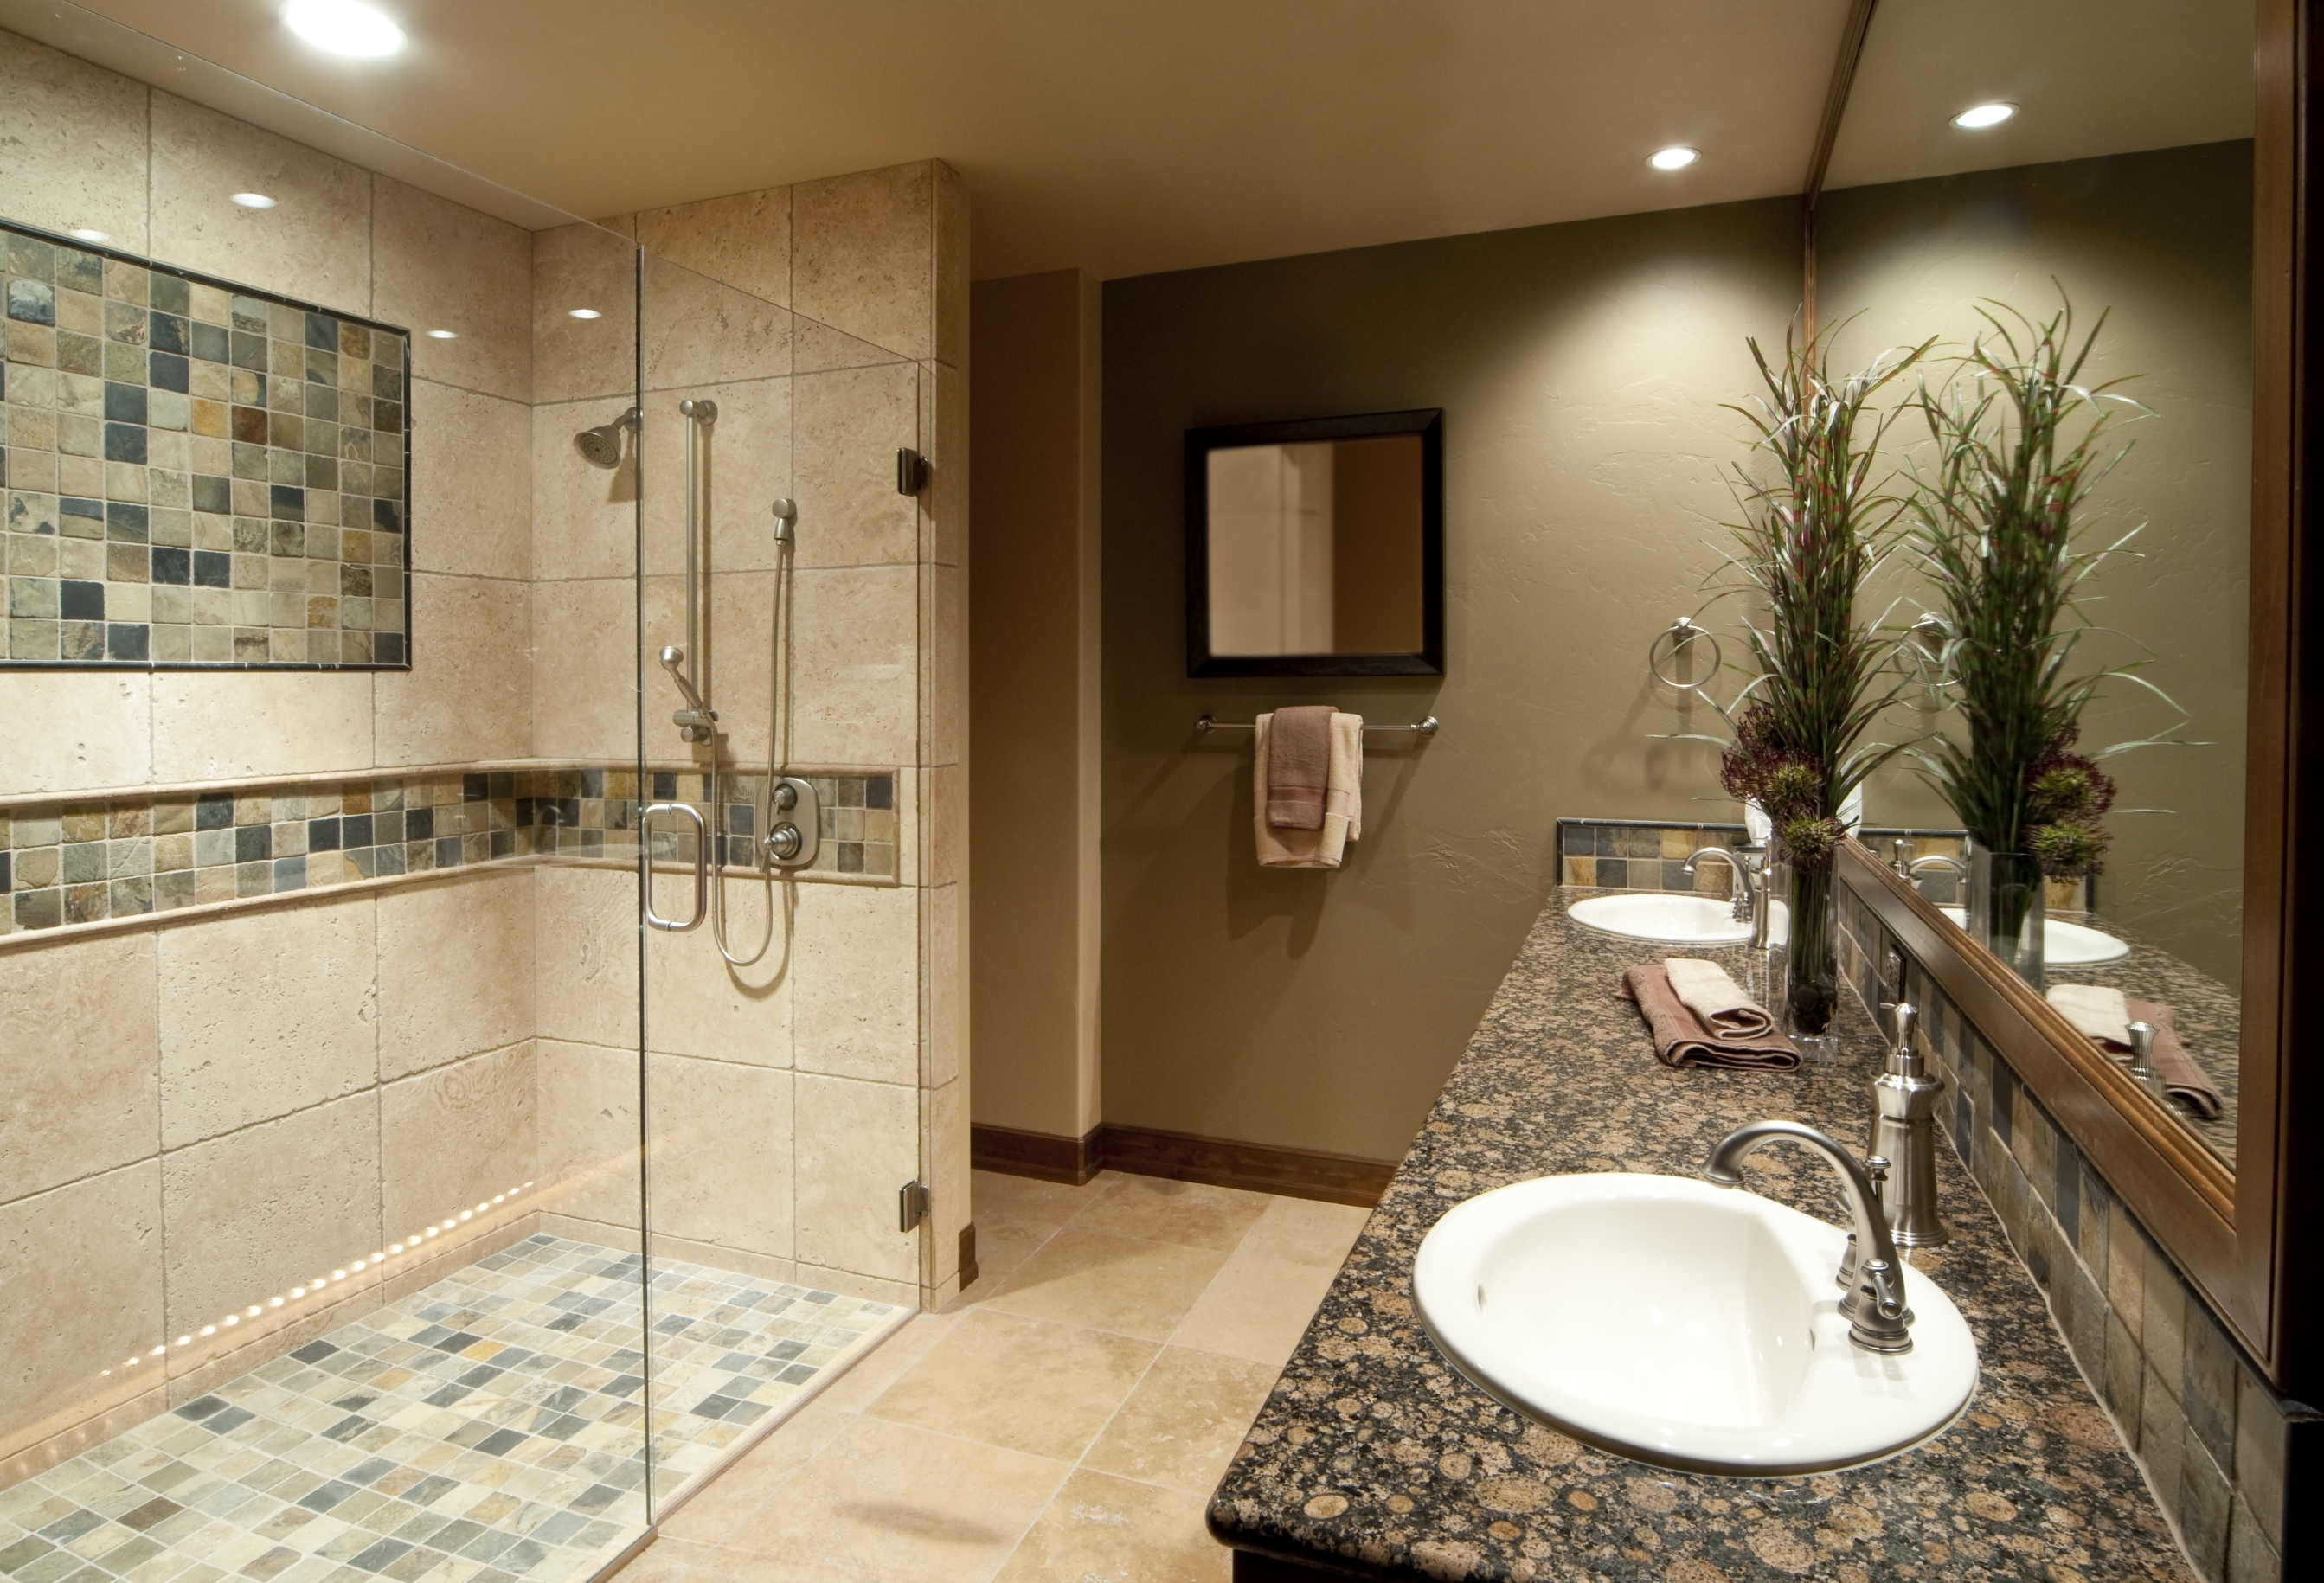 Cheap Ways To Improve Your Bathroom